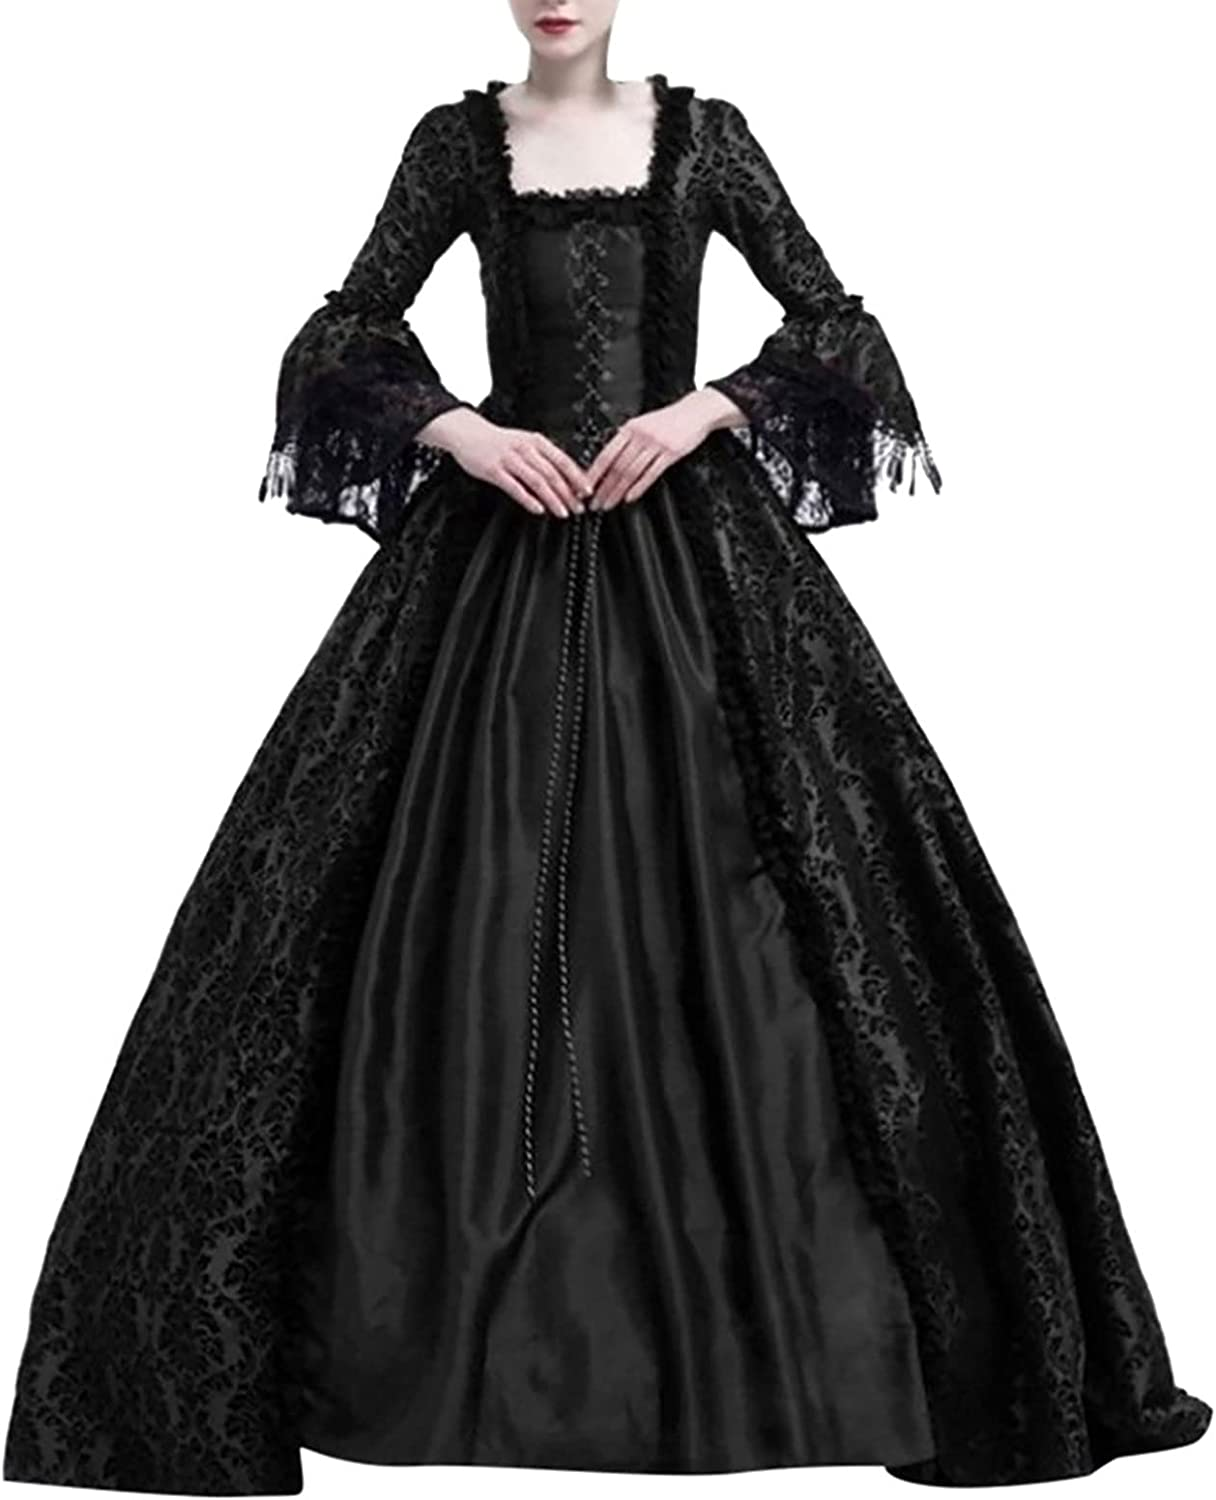 Womens Medieval Vintage Gothic Palace Dress Princess Dress Stitching Waist Floor Length Cosplay Costume